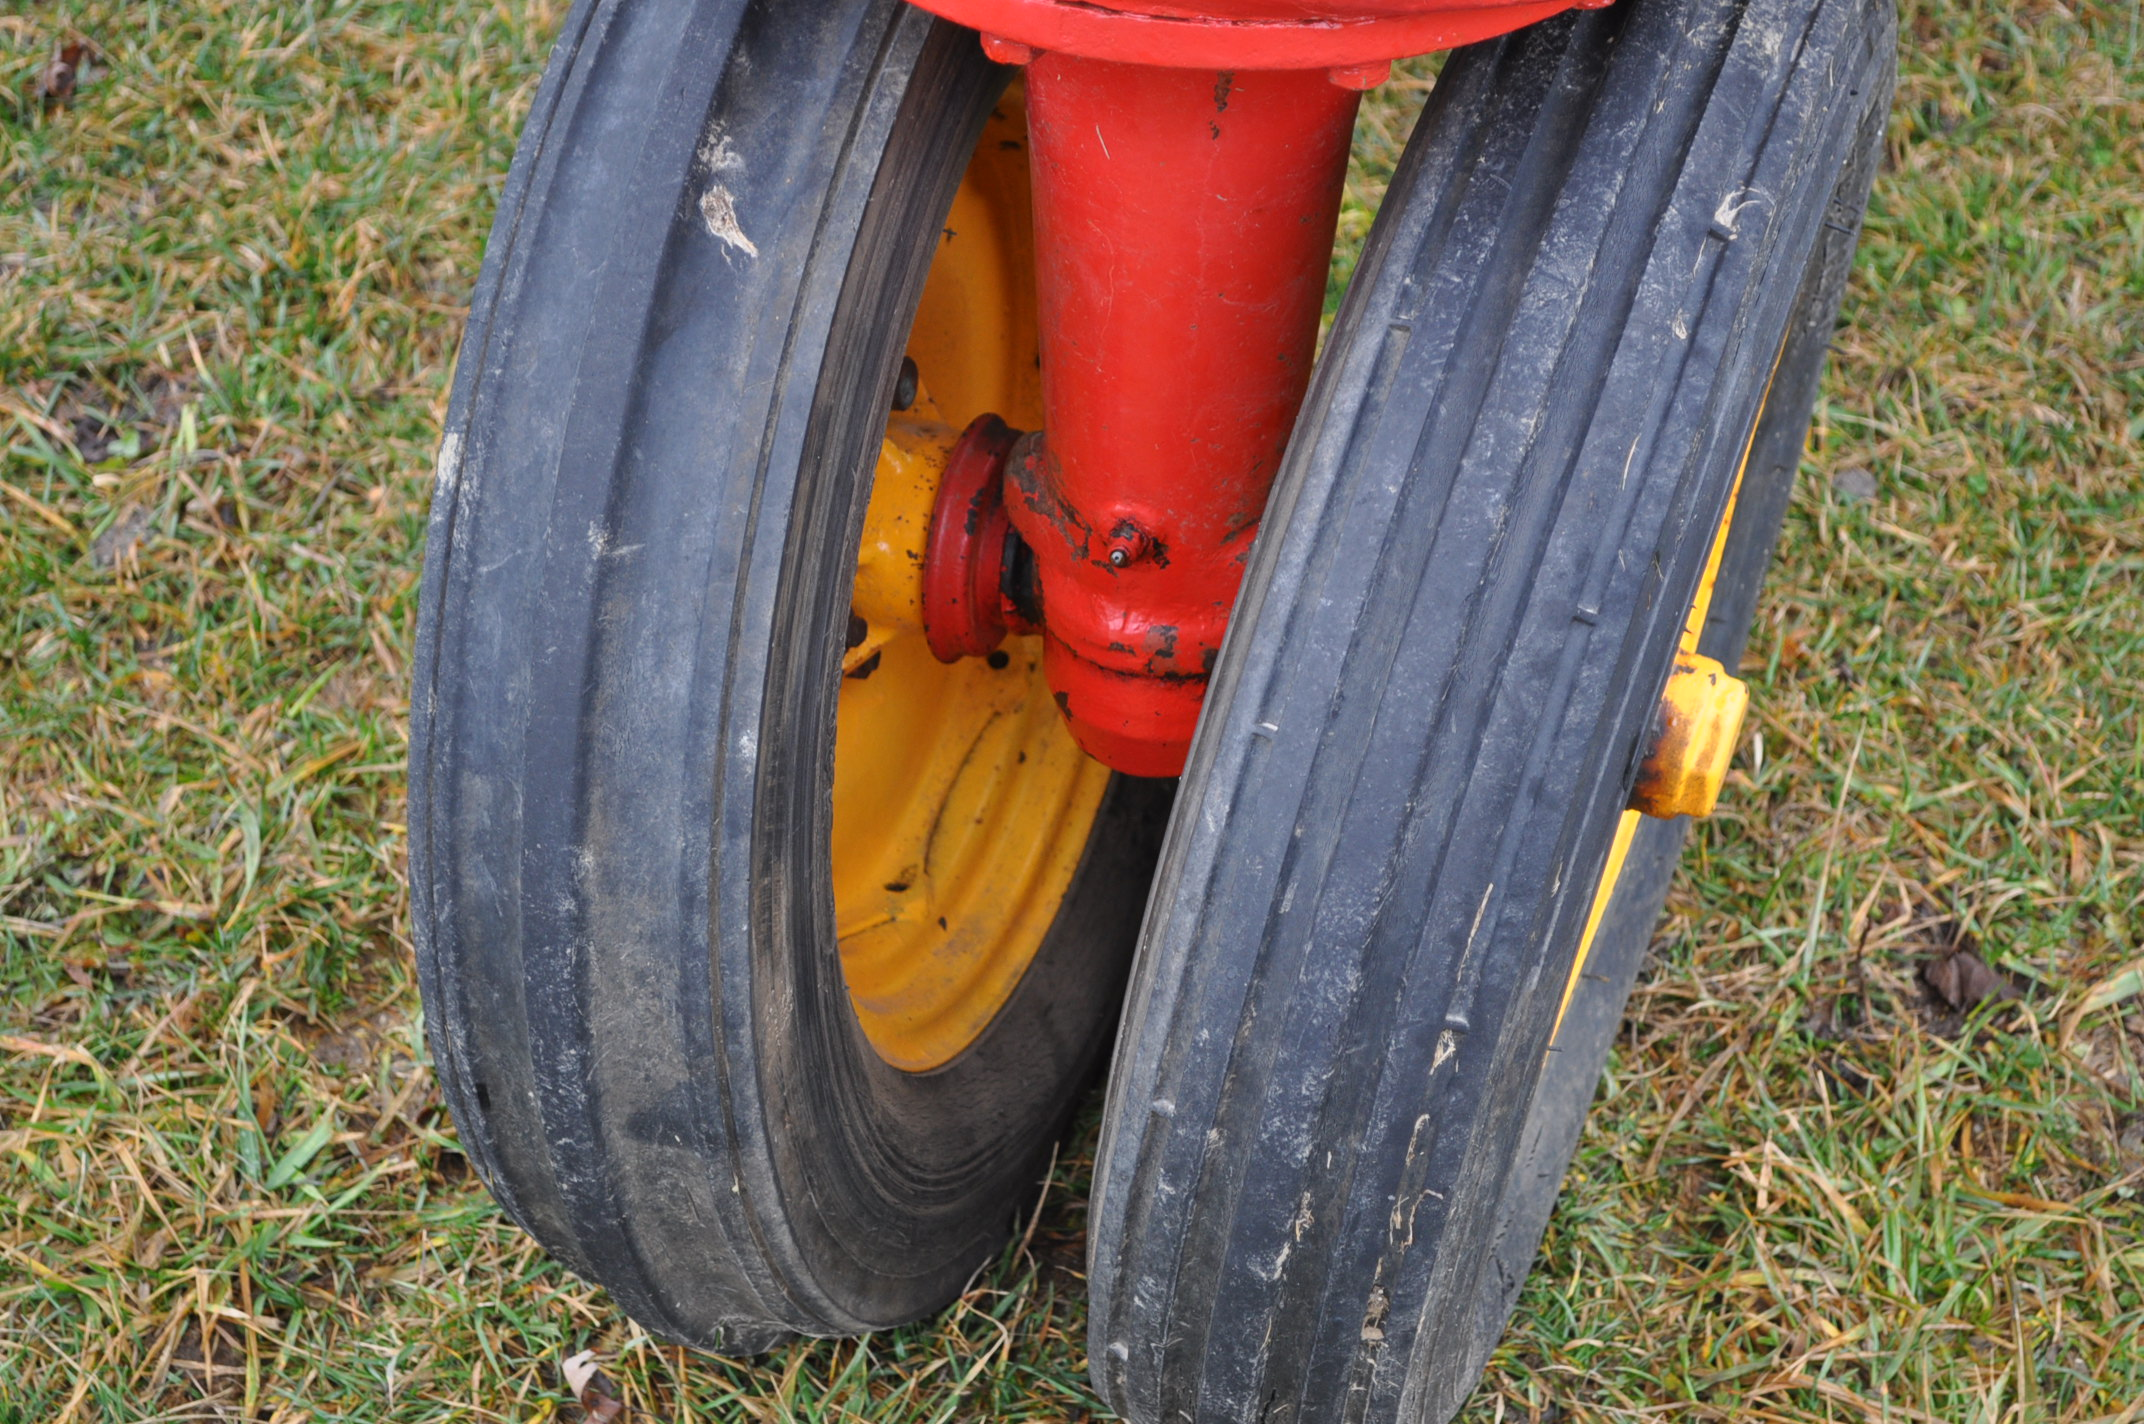 Massey Harris 101 Junior tractor, 12-38 tires, narrow front, 540 pto, SN 501605 - Image 5 of 12